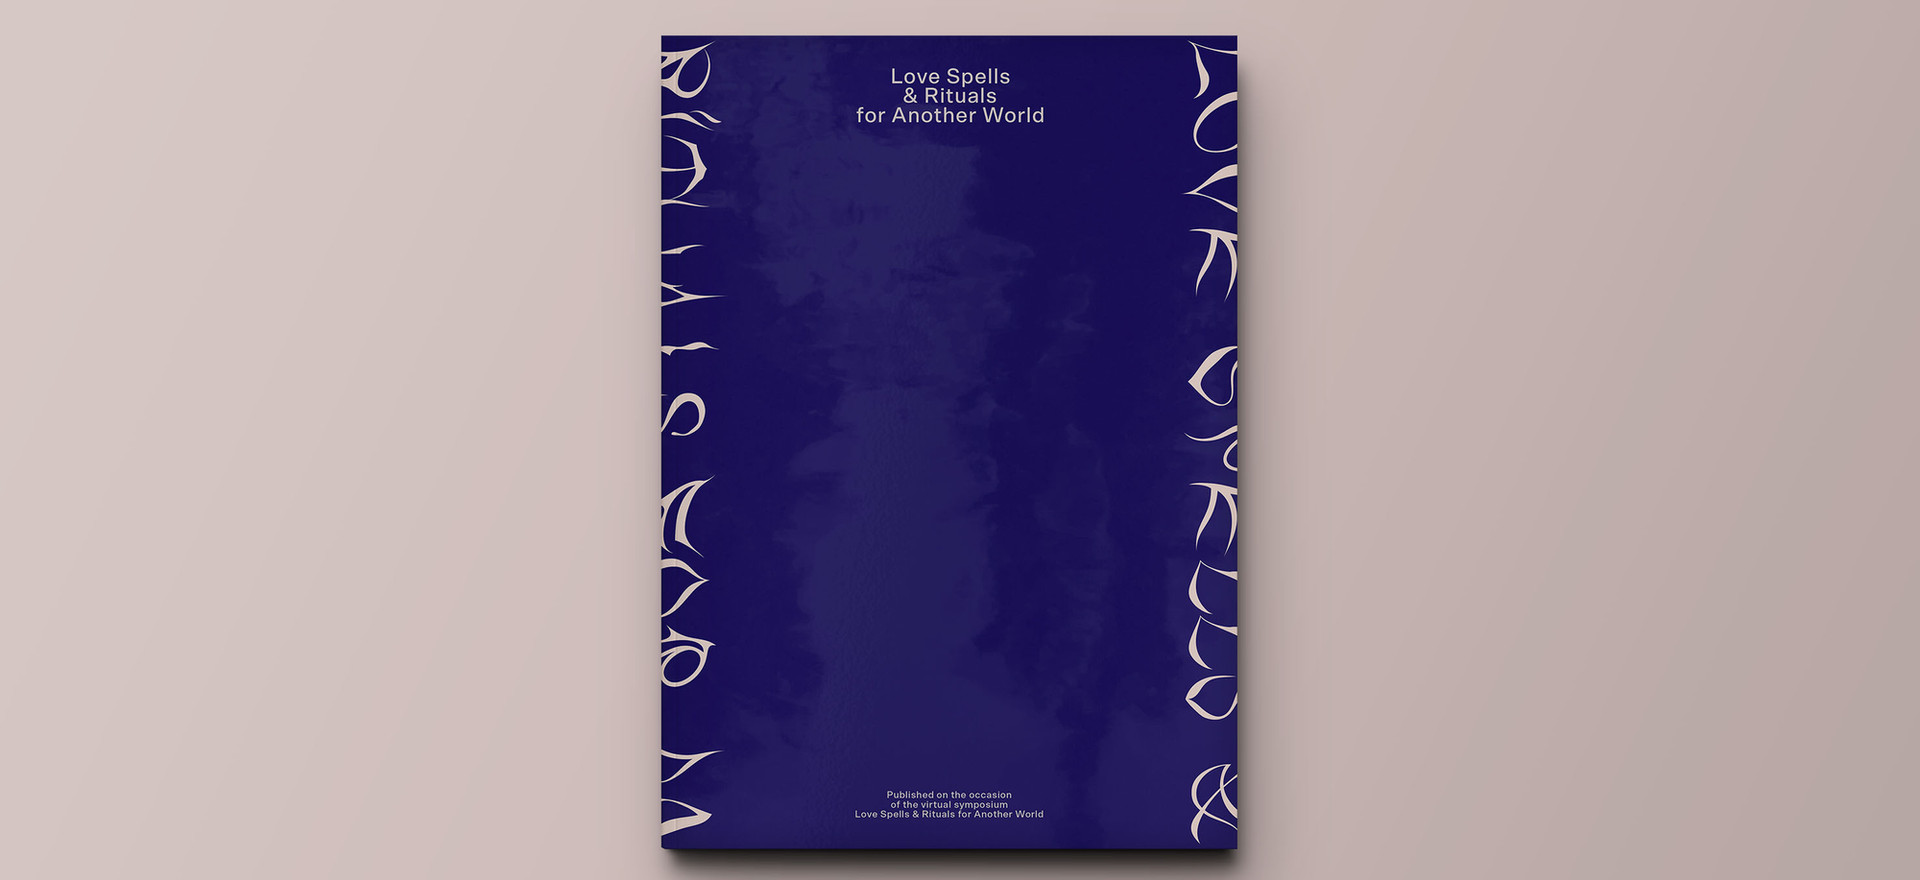 Love Spells & Rituals for Another World  Edited by Lilly Markaki and Caroline Harris Designed by Toni Brell  January 2021, English 210 x 297mm, 130 pages, soft cover, ISBN 978-1-80049-214-1 Independent Publishing Network